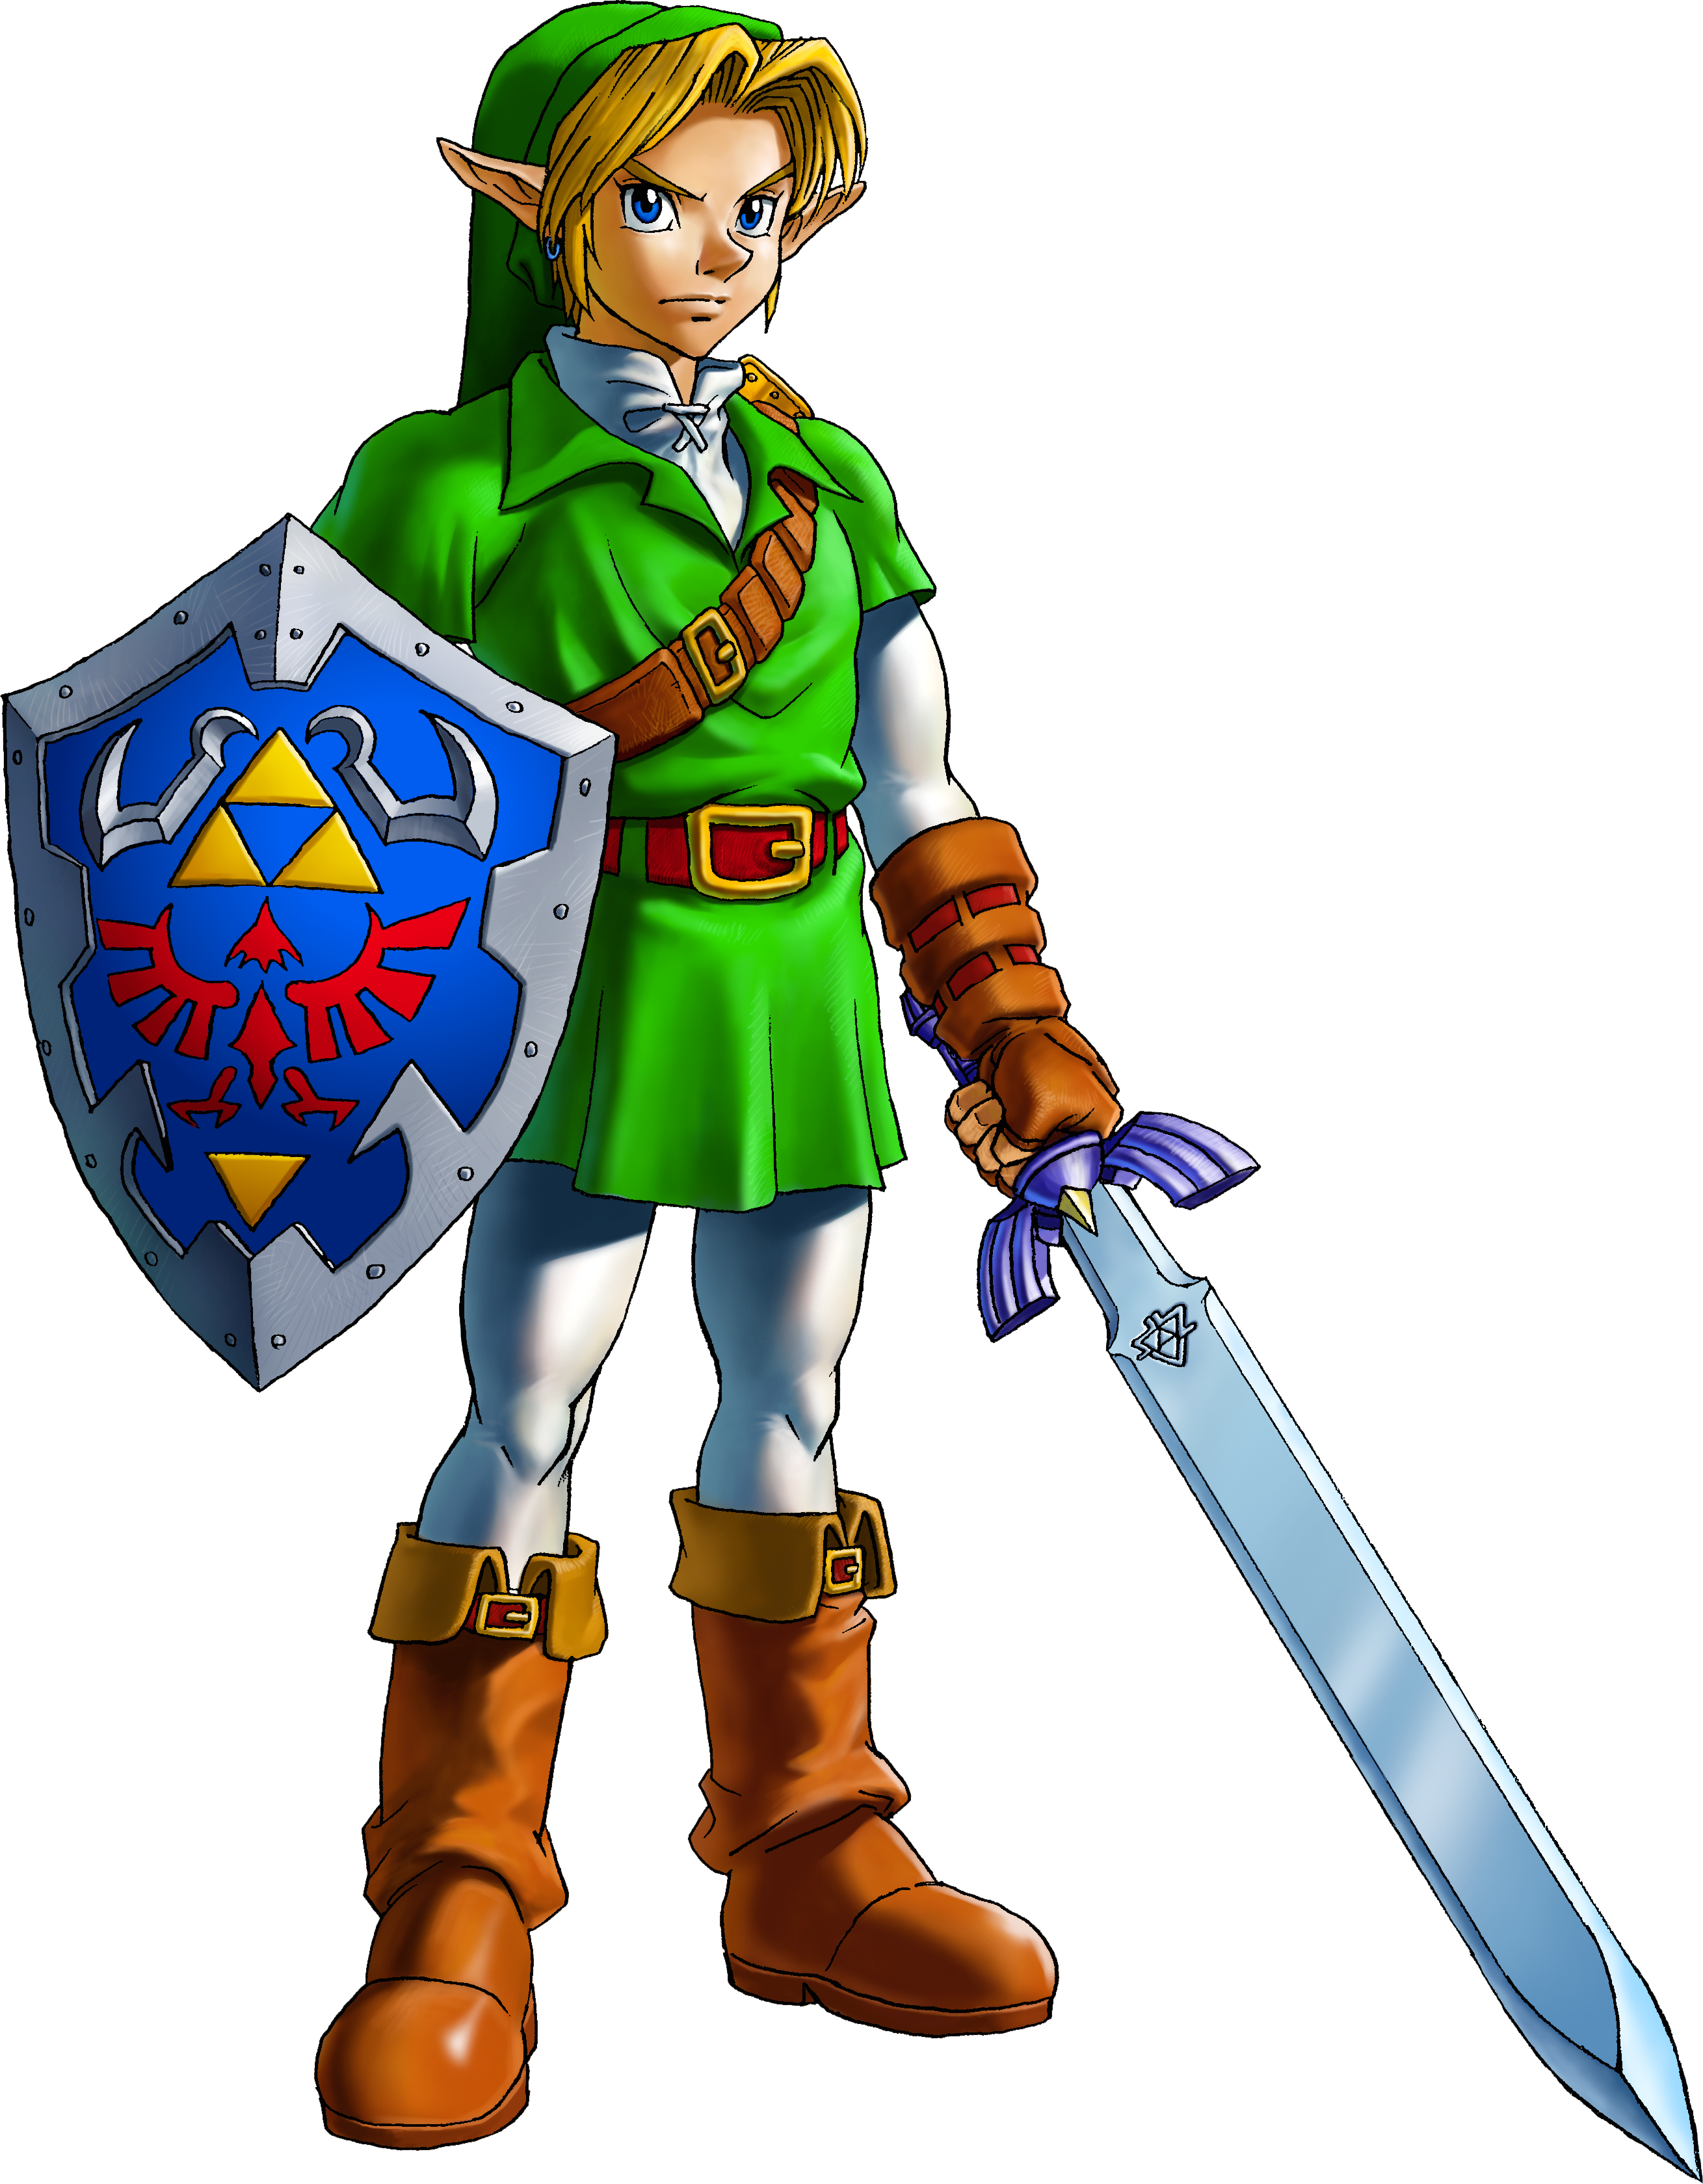 How tall is .... from Ocarina Of Time? - Classic Zelda - Zelda ...